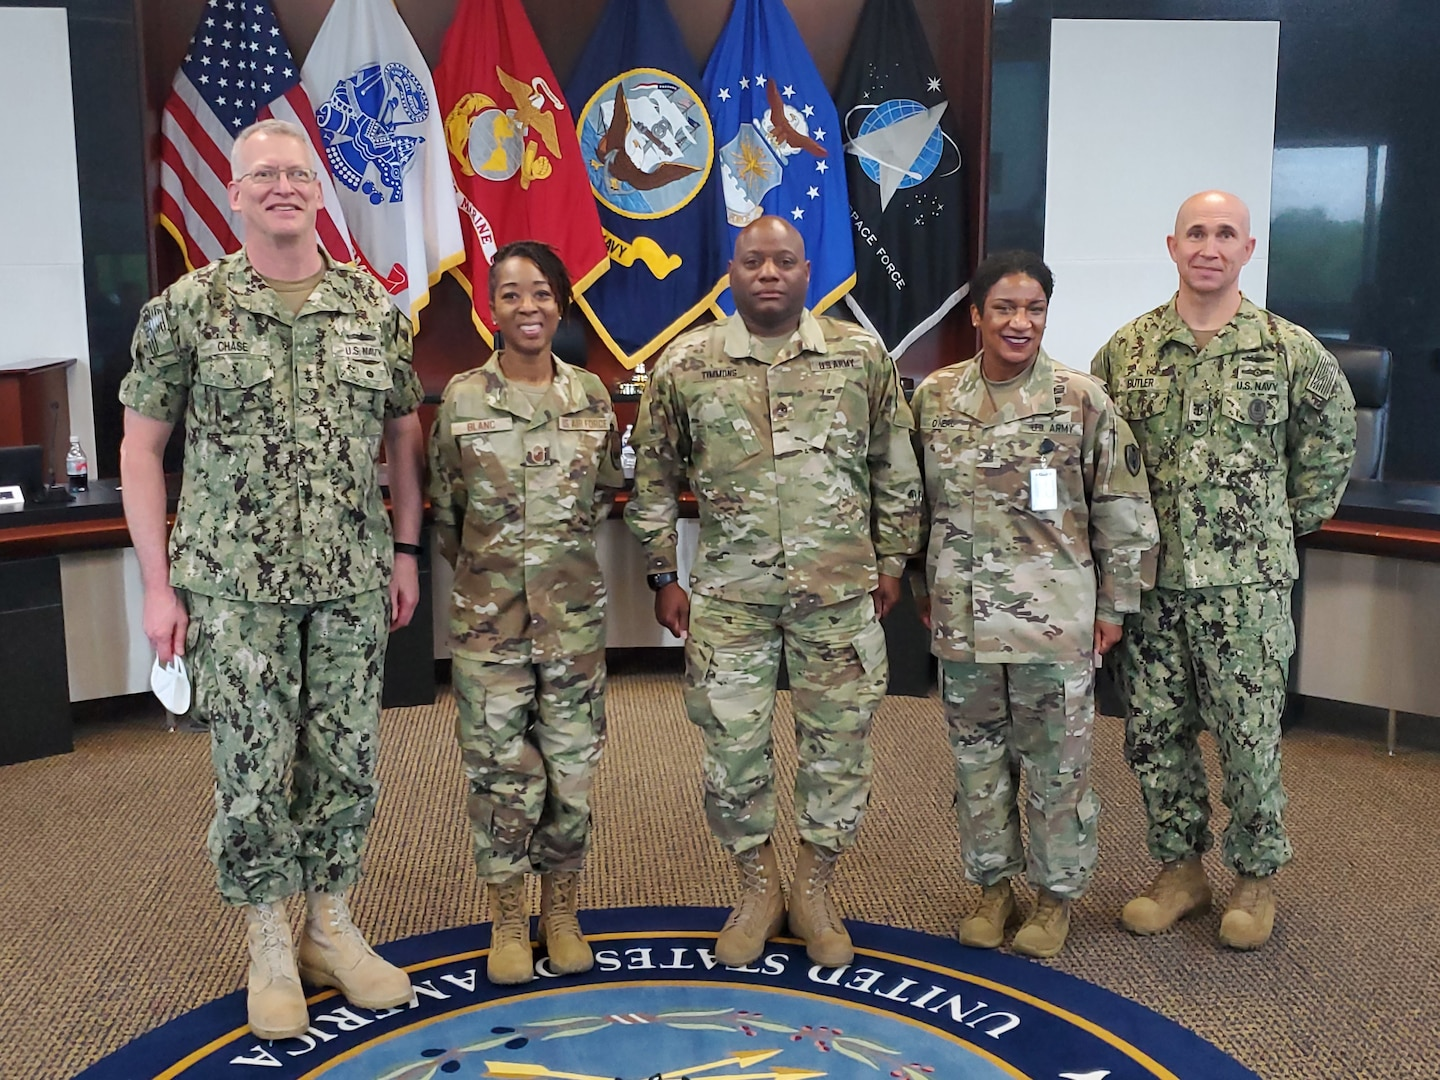 Four service members stand for a photo with flags in the background